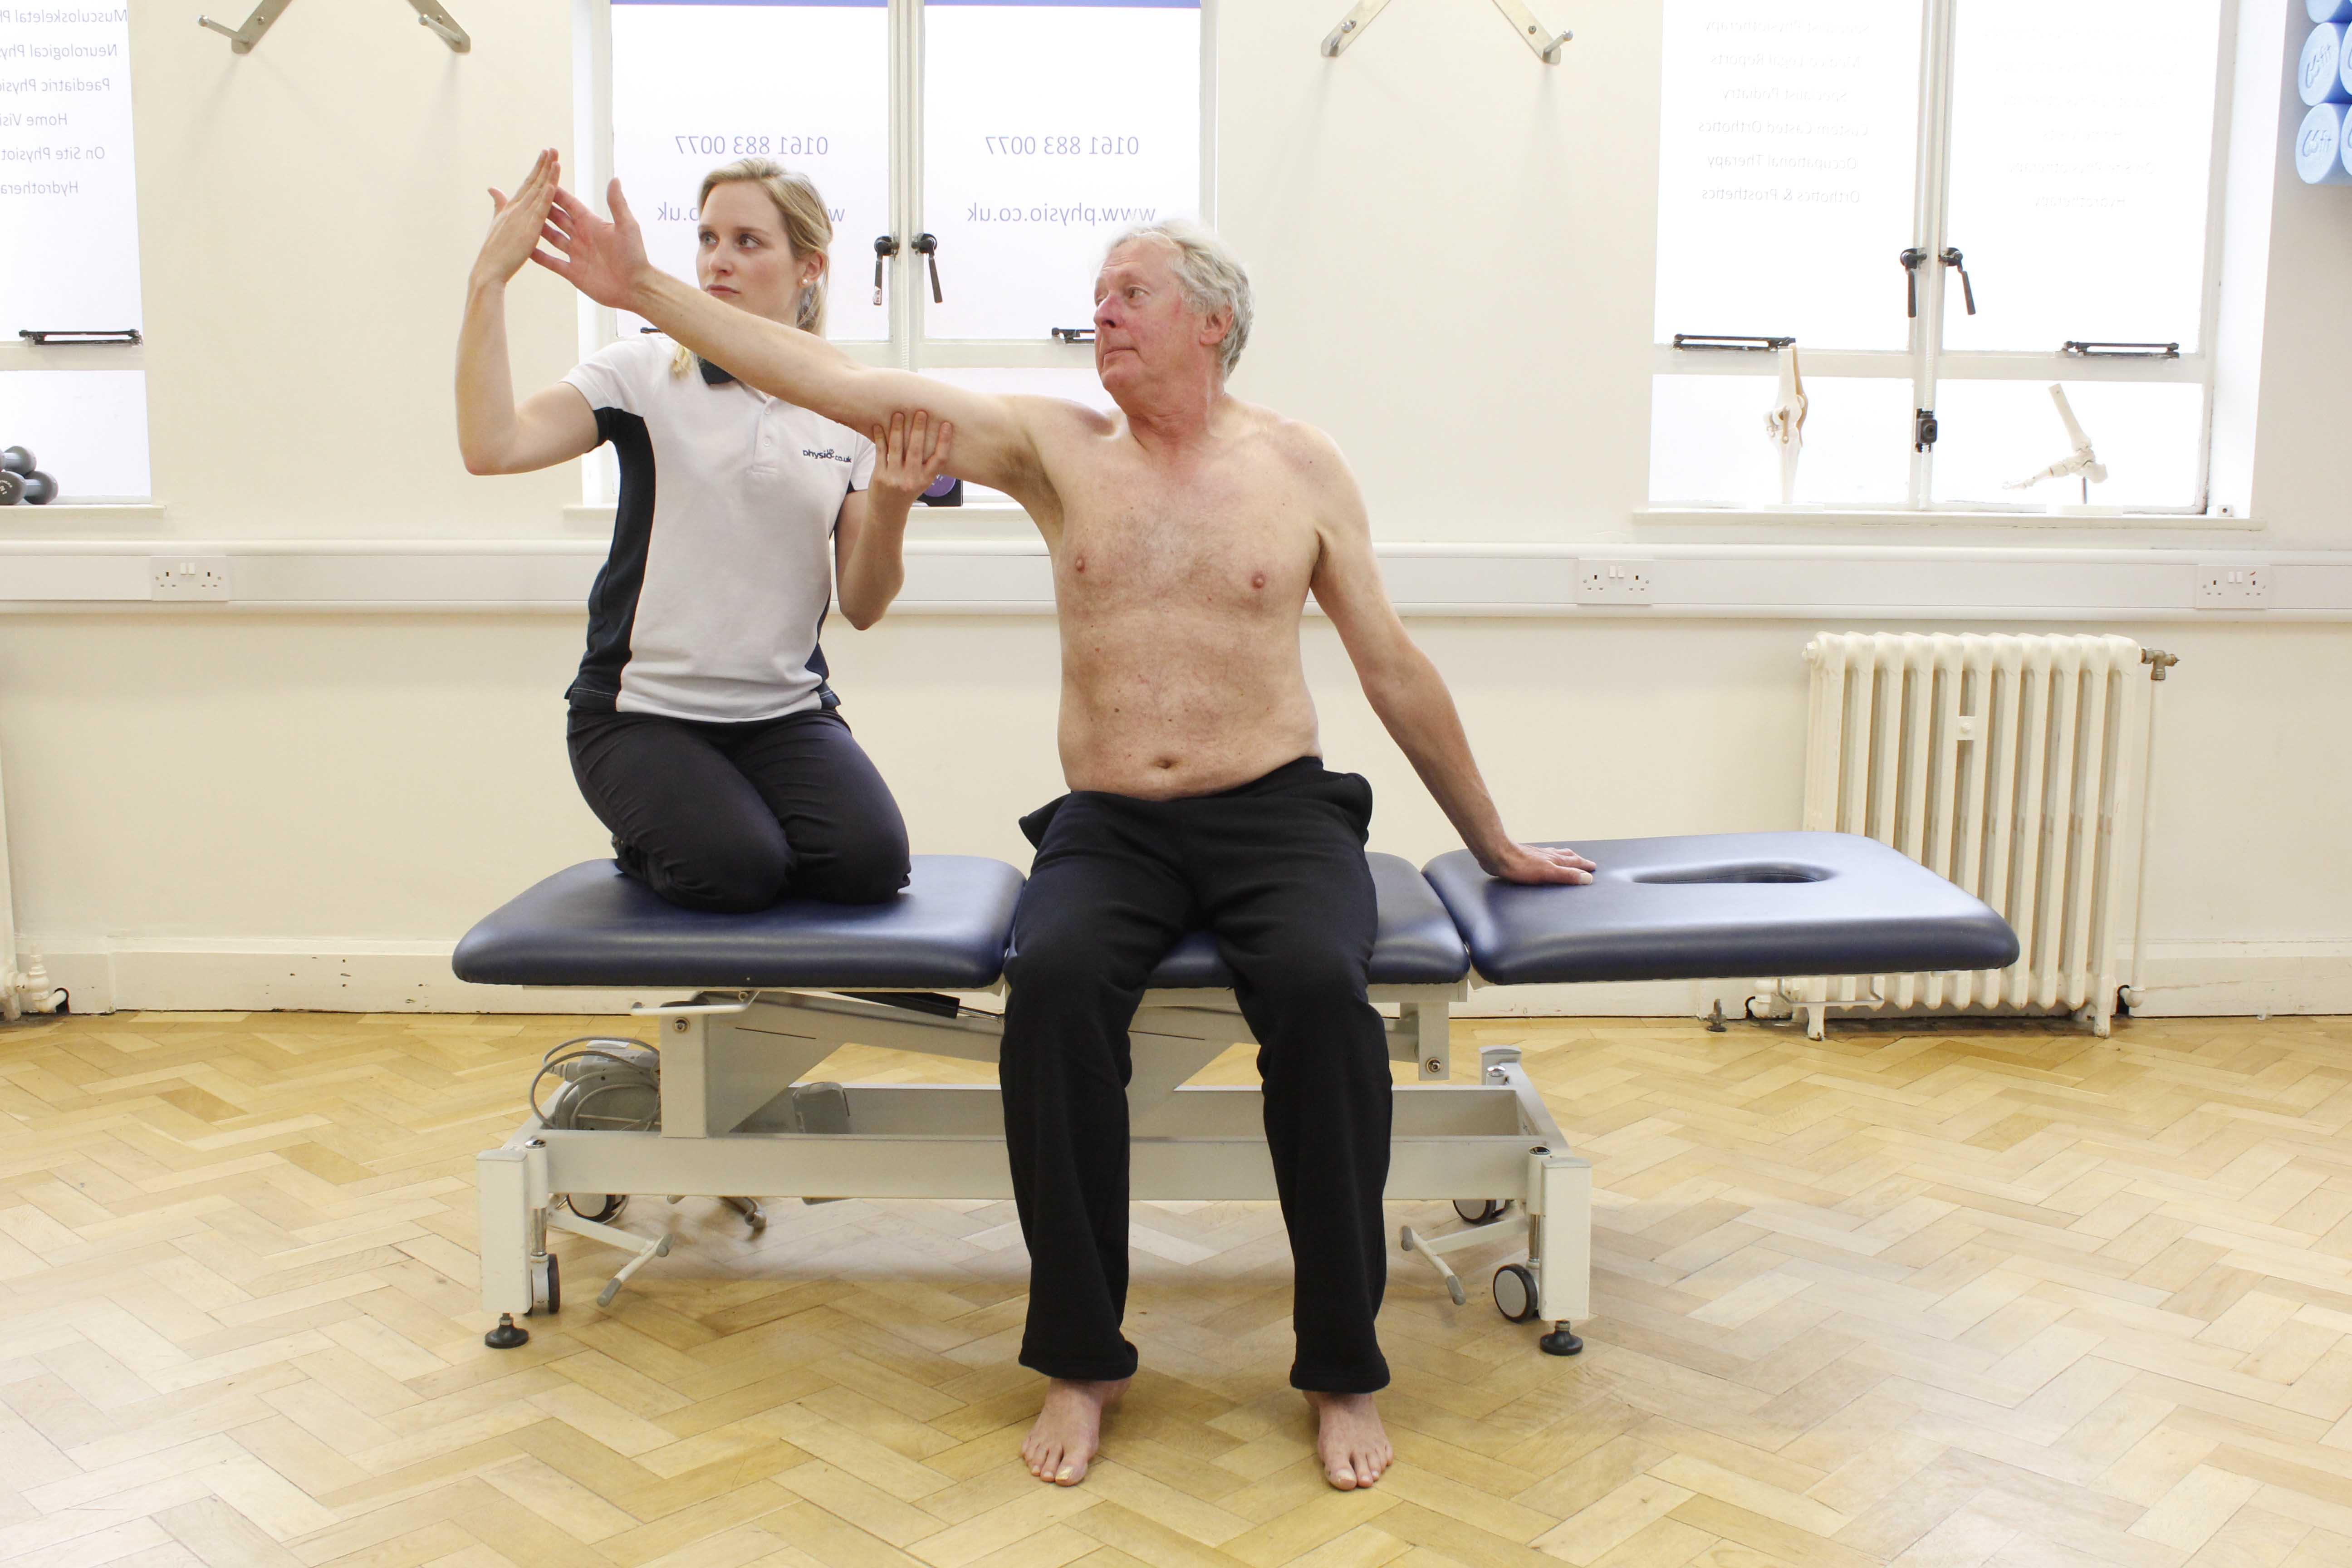 Reaching balance exercises supervised by an experienced neuro physiotherapist